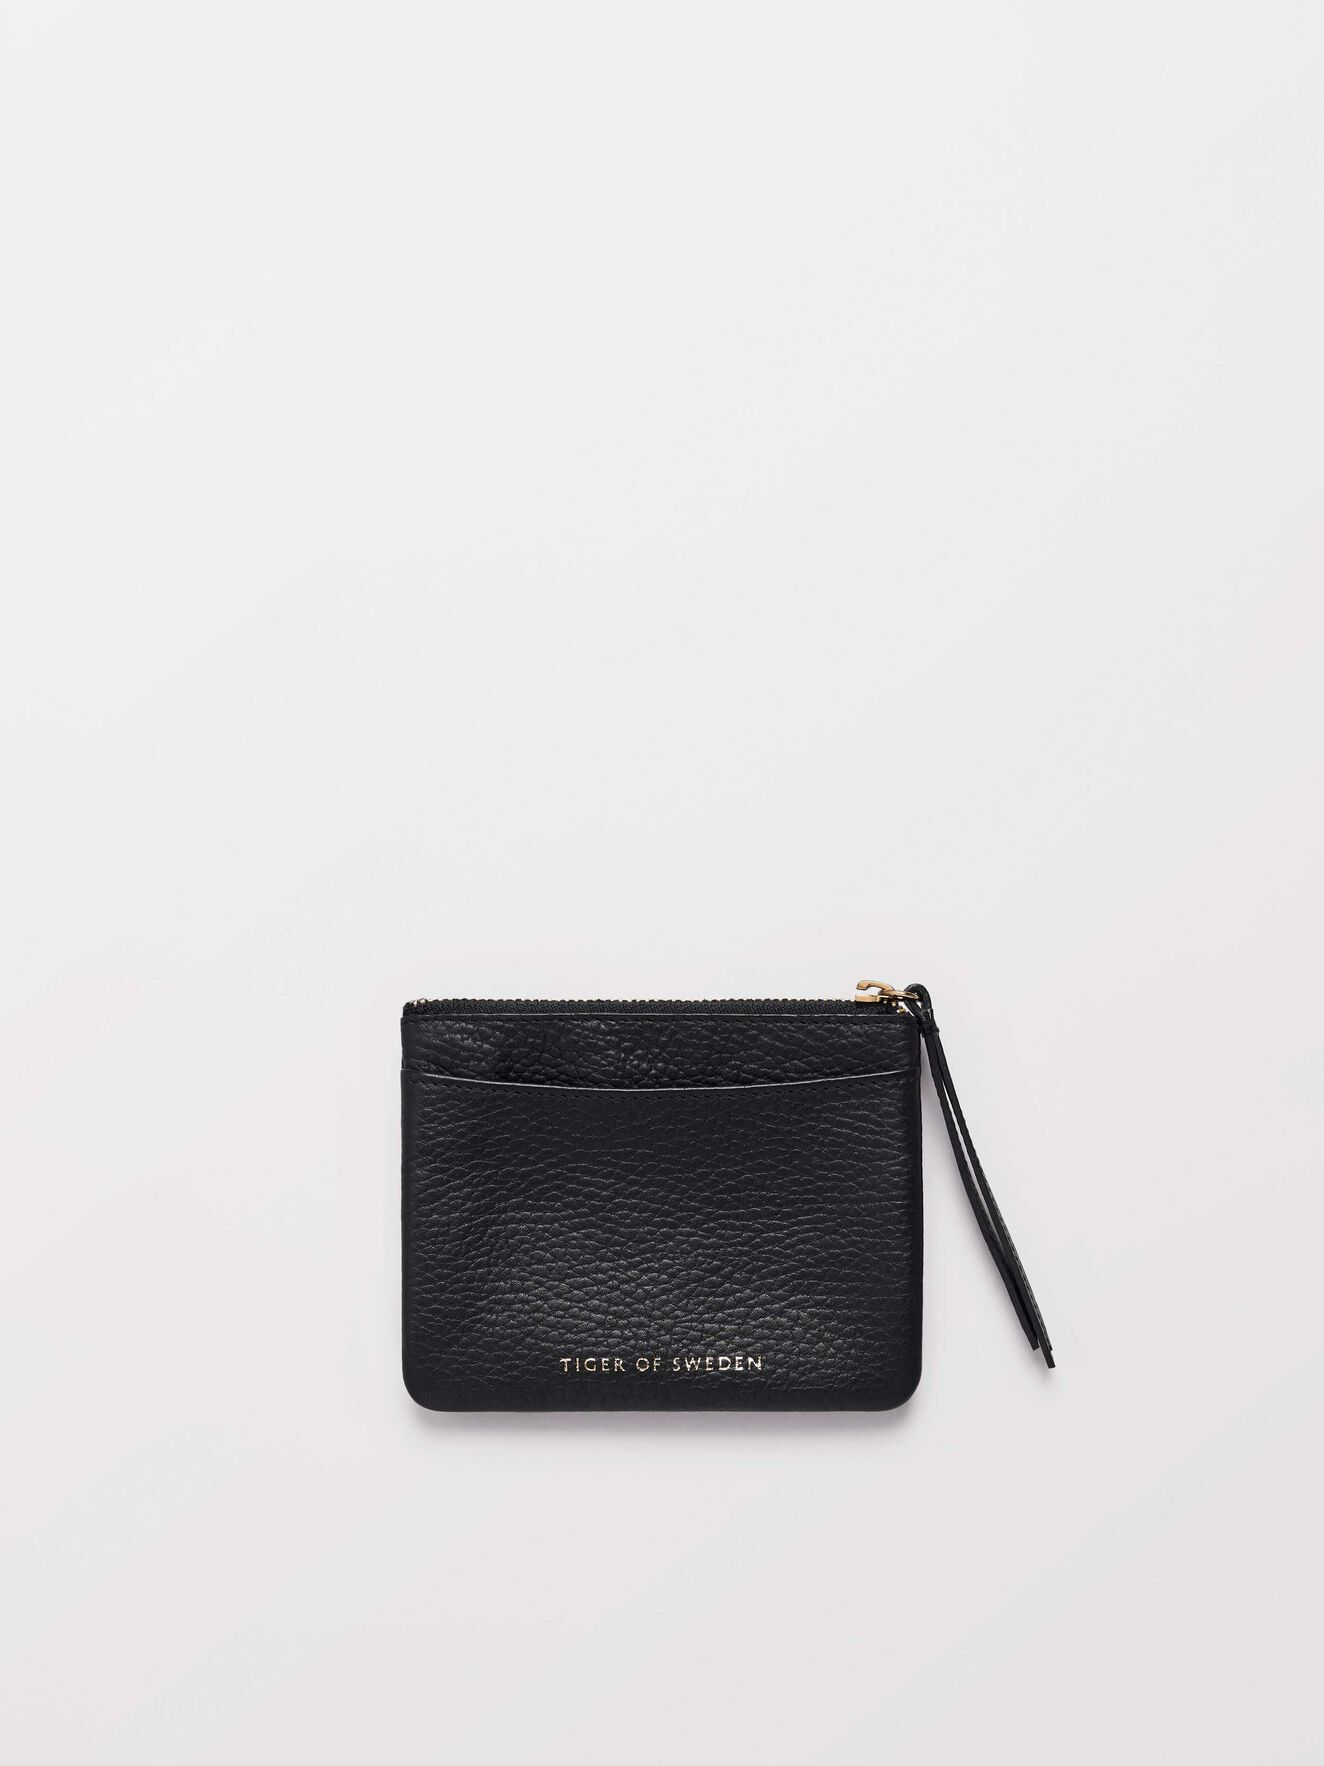 Wirra Purse in Black from Tiger of Sweden